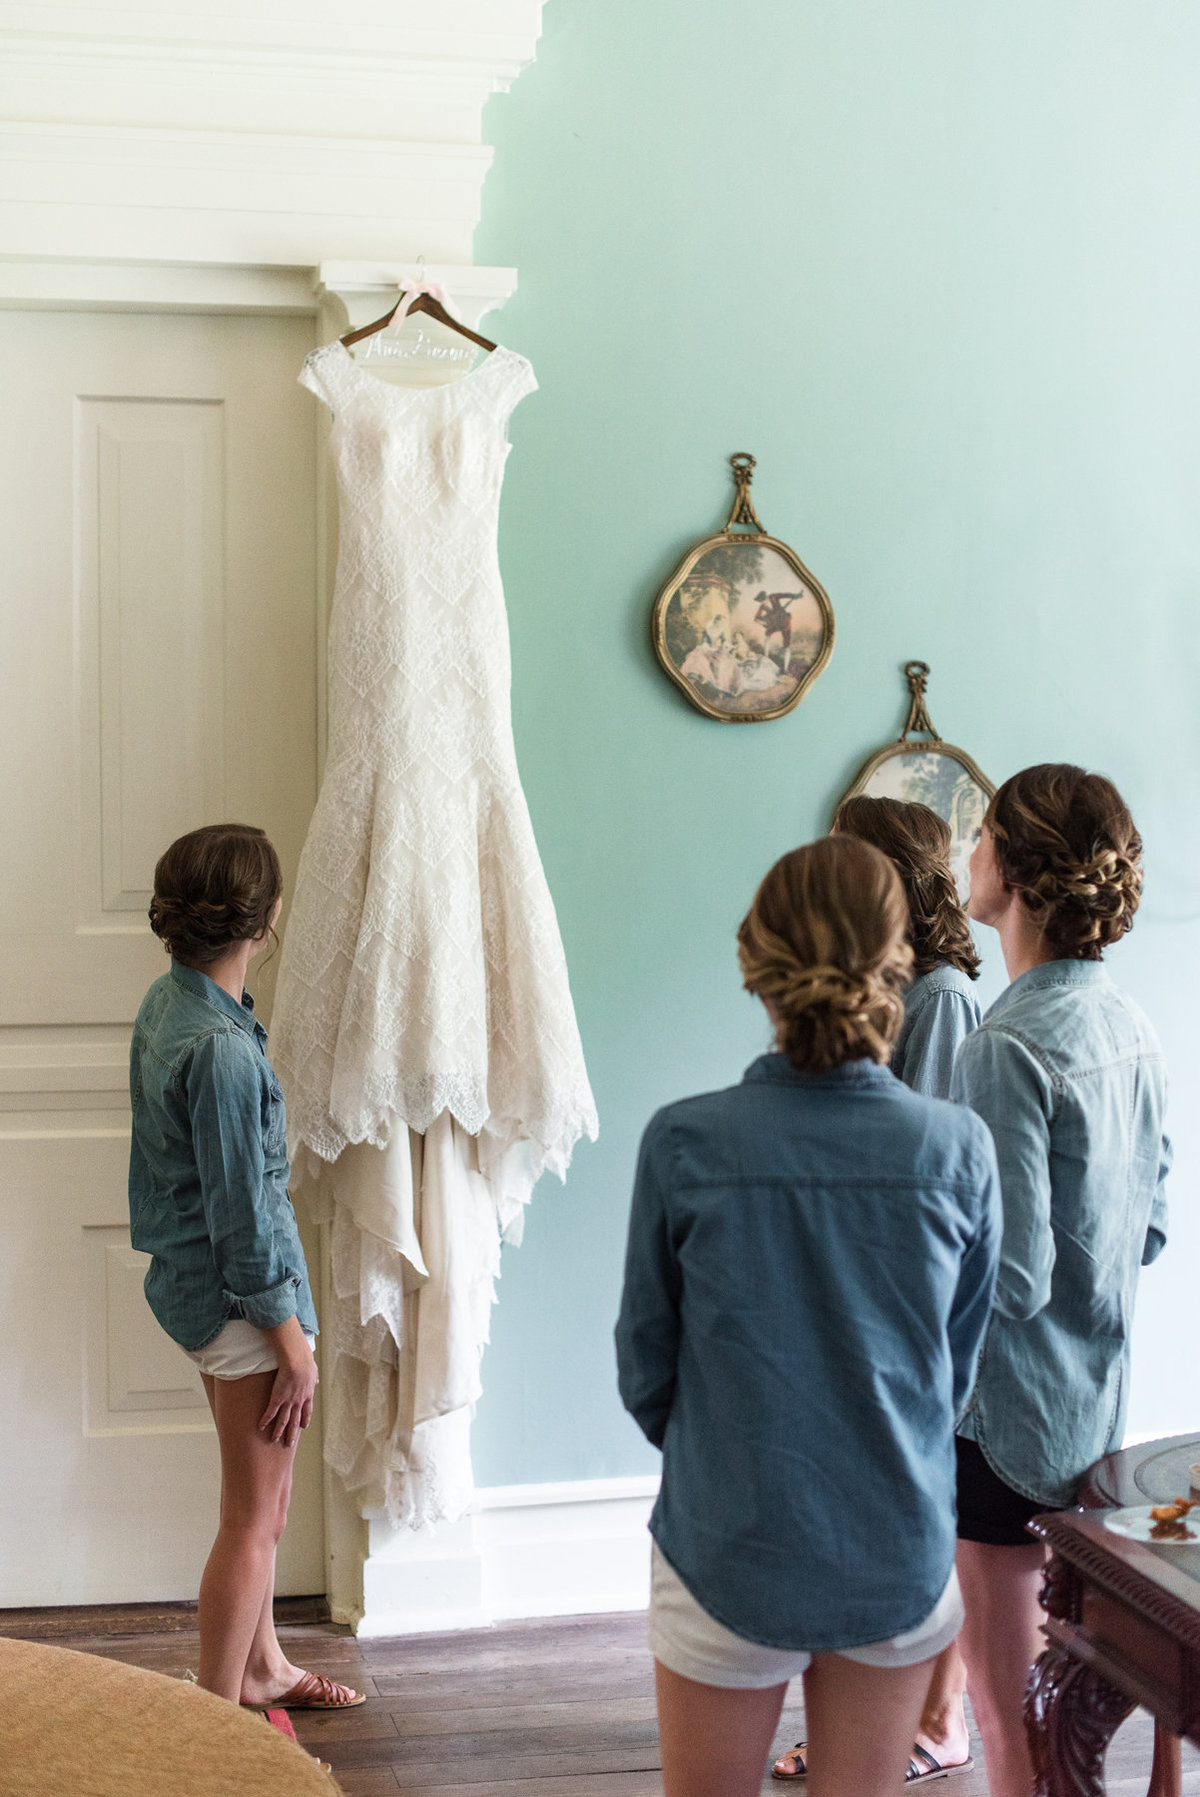 cedar hall wedding photo dress hanging